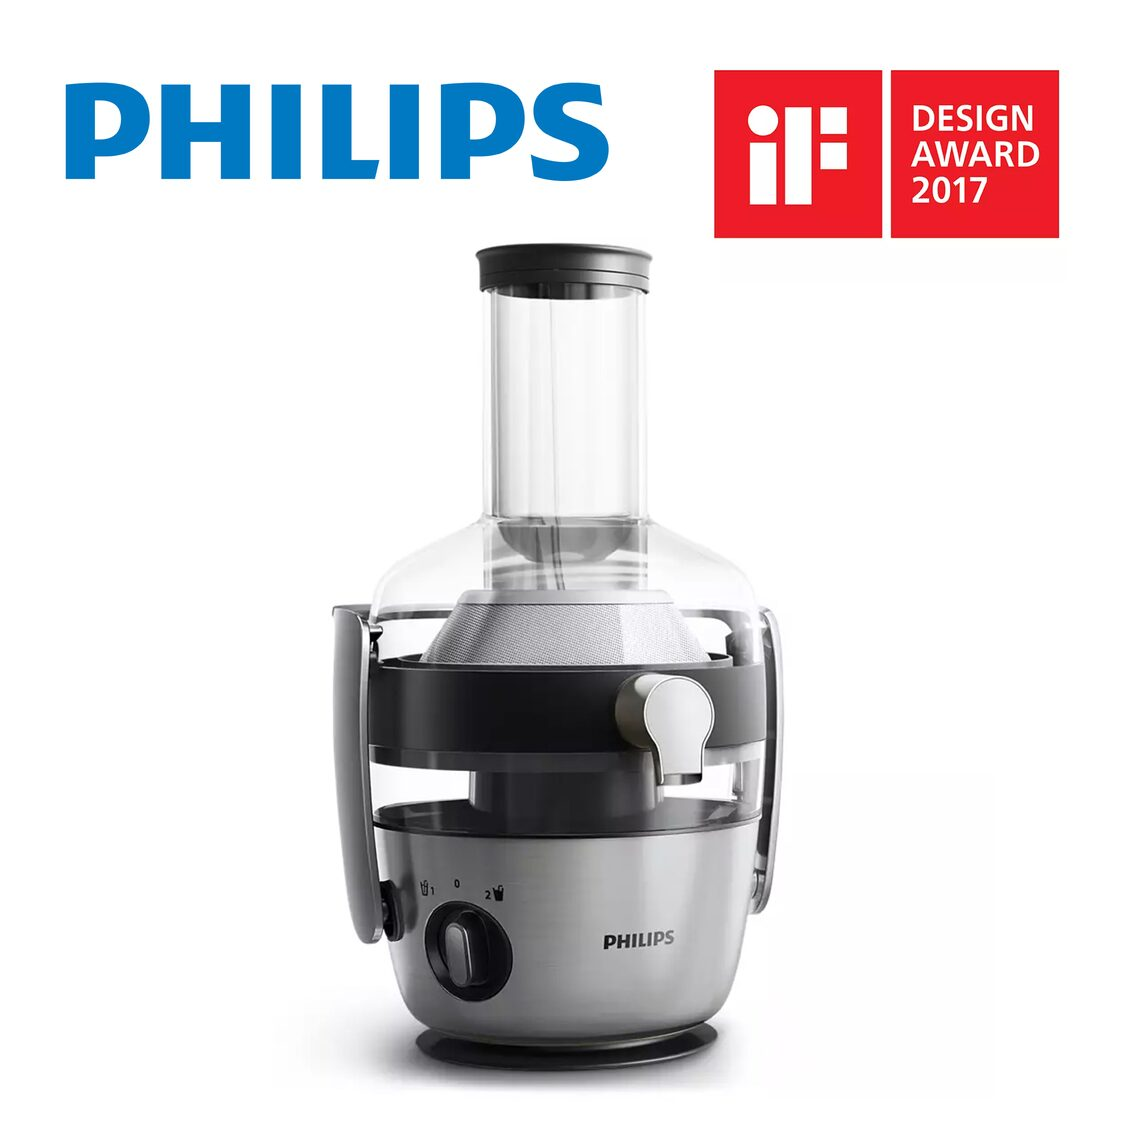 Philips Avance Collection 1200W Juicer HR192221